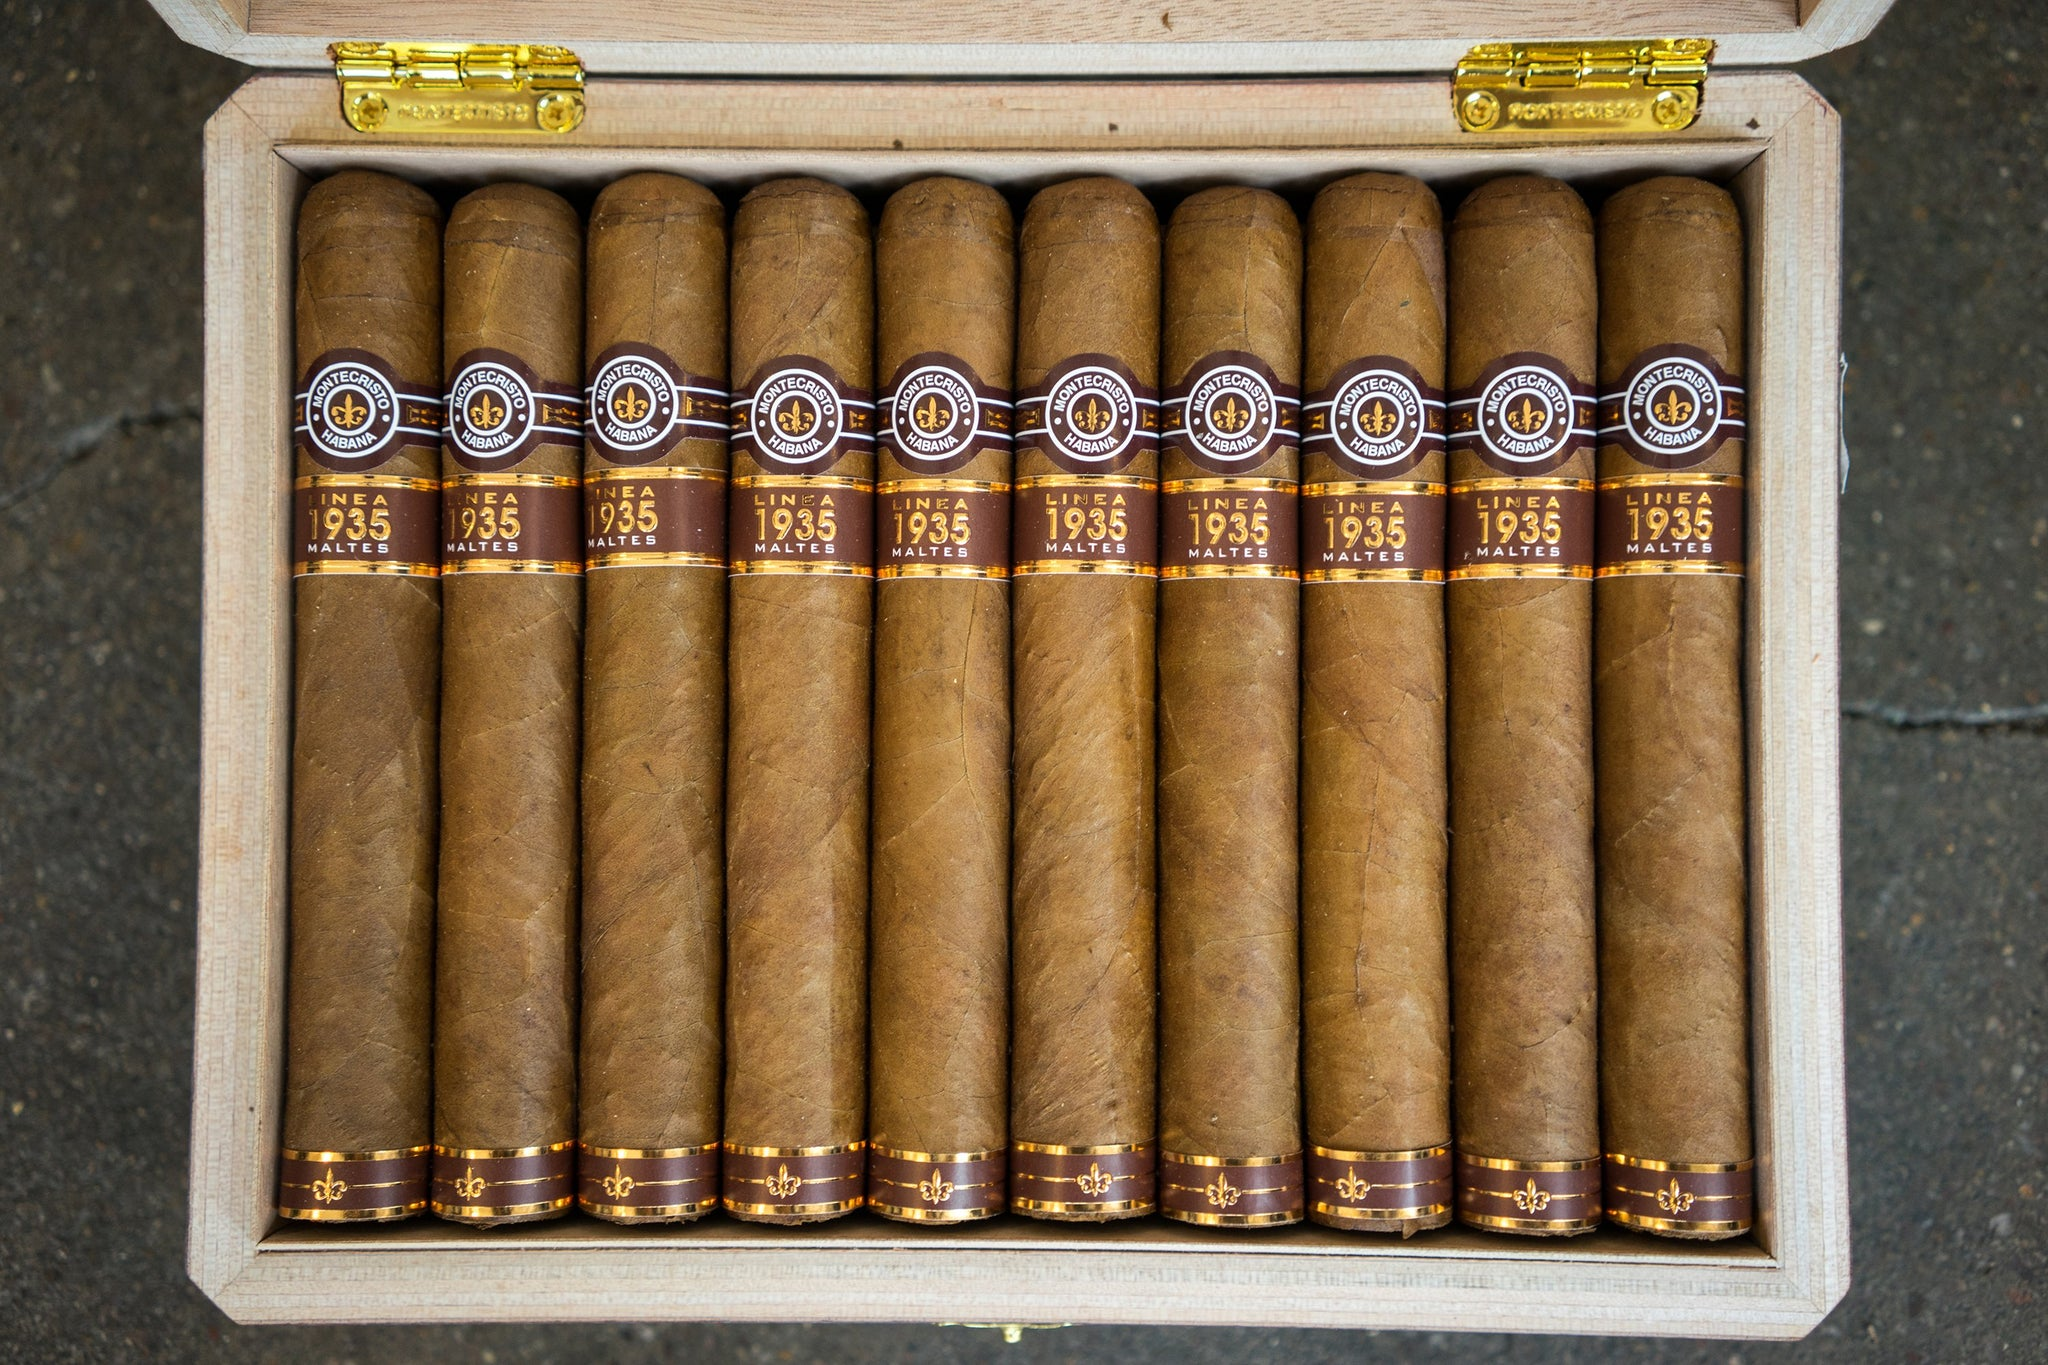 Montecristo Linea 1935 Maltes Cigar Available for Sale egm cigars